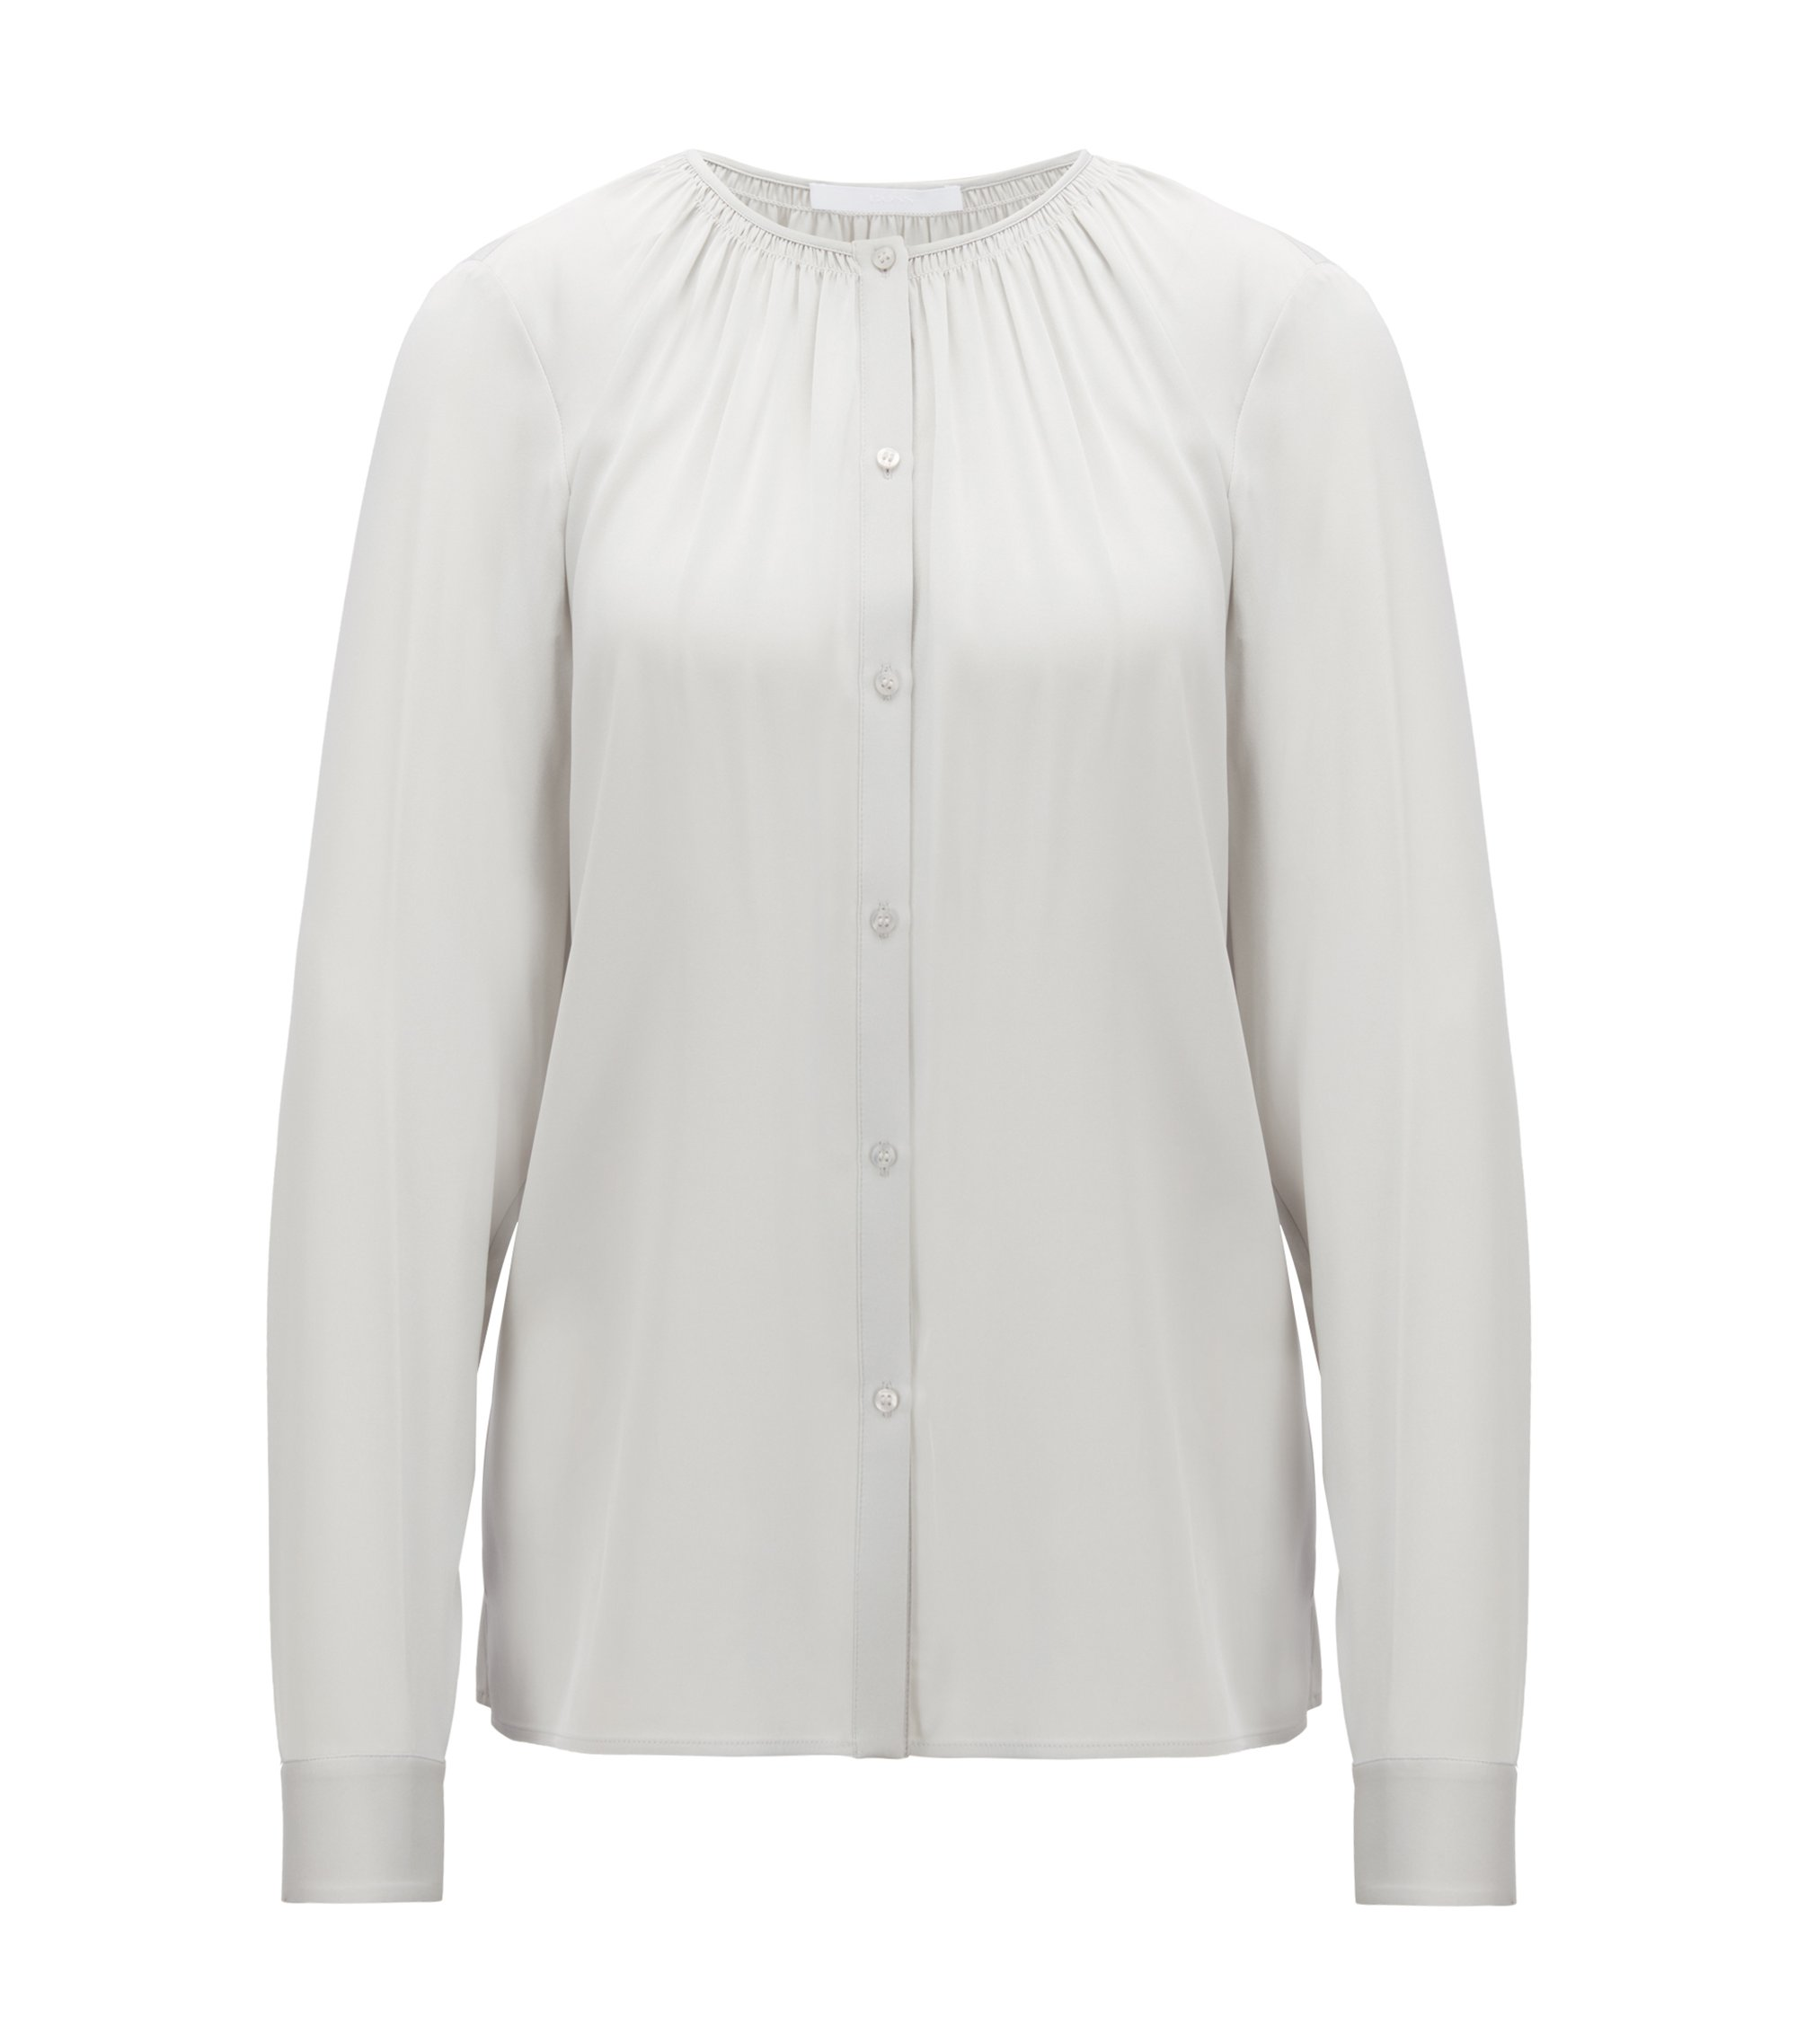 Crepe-de-chine blouse with smocked neckline, Silver